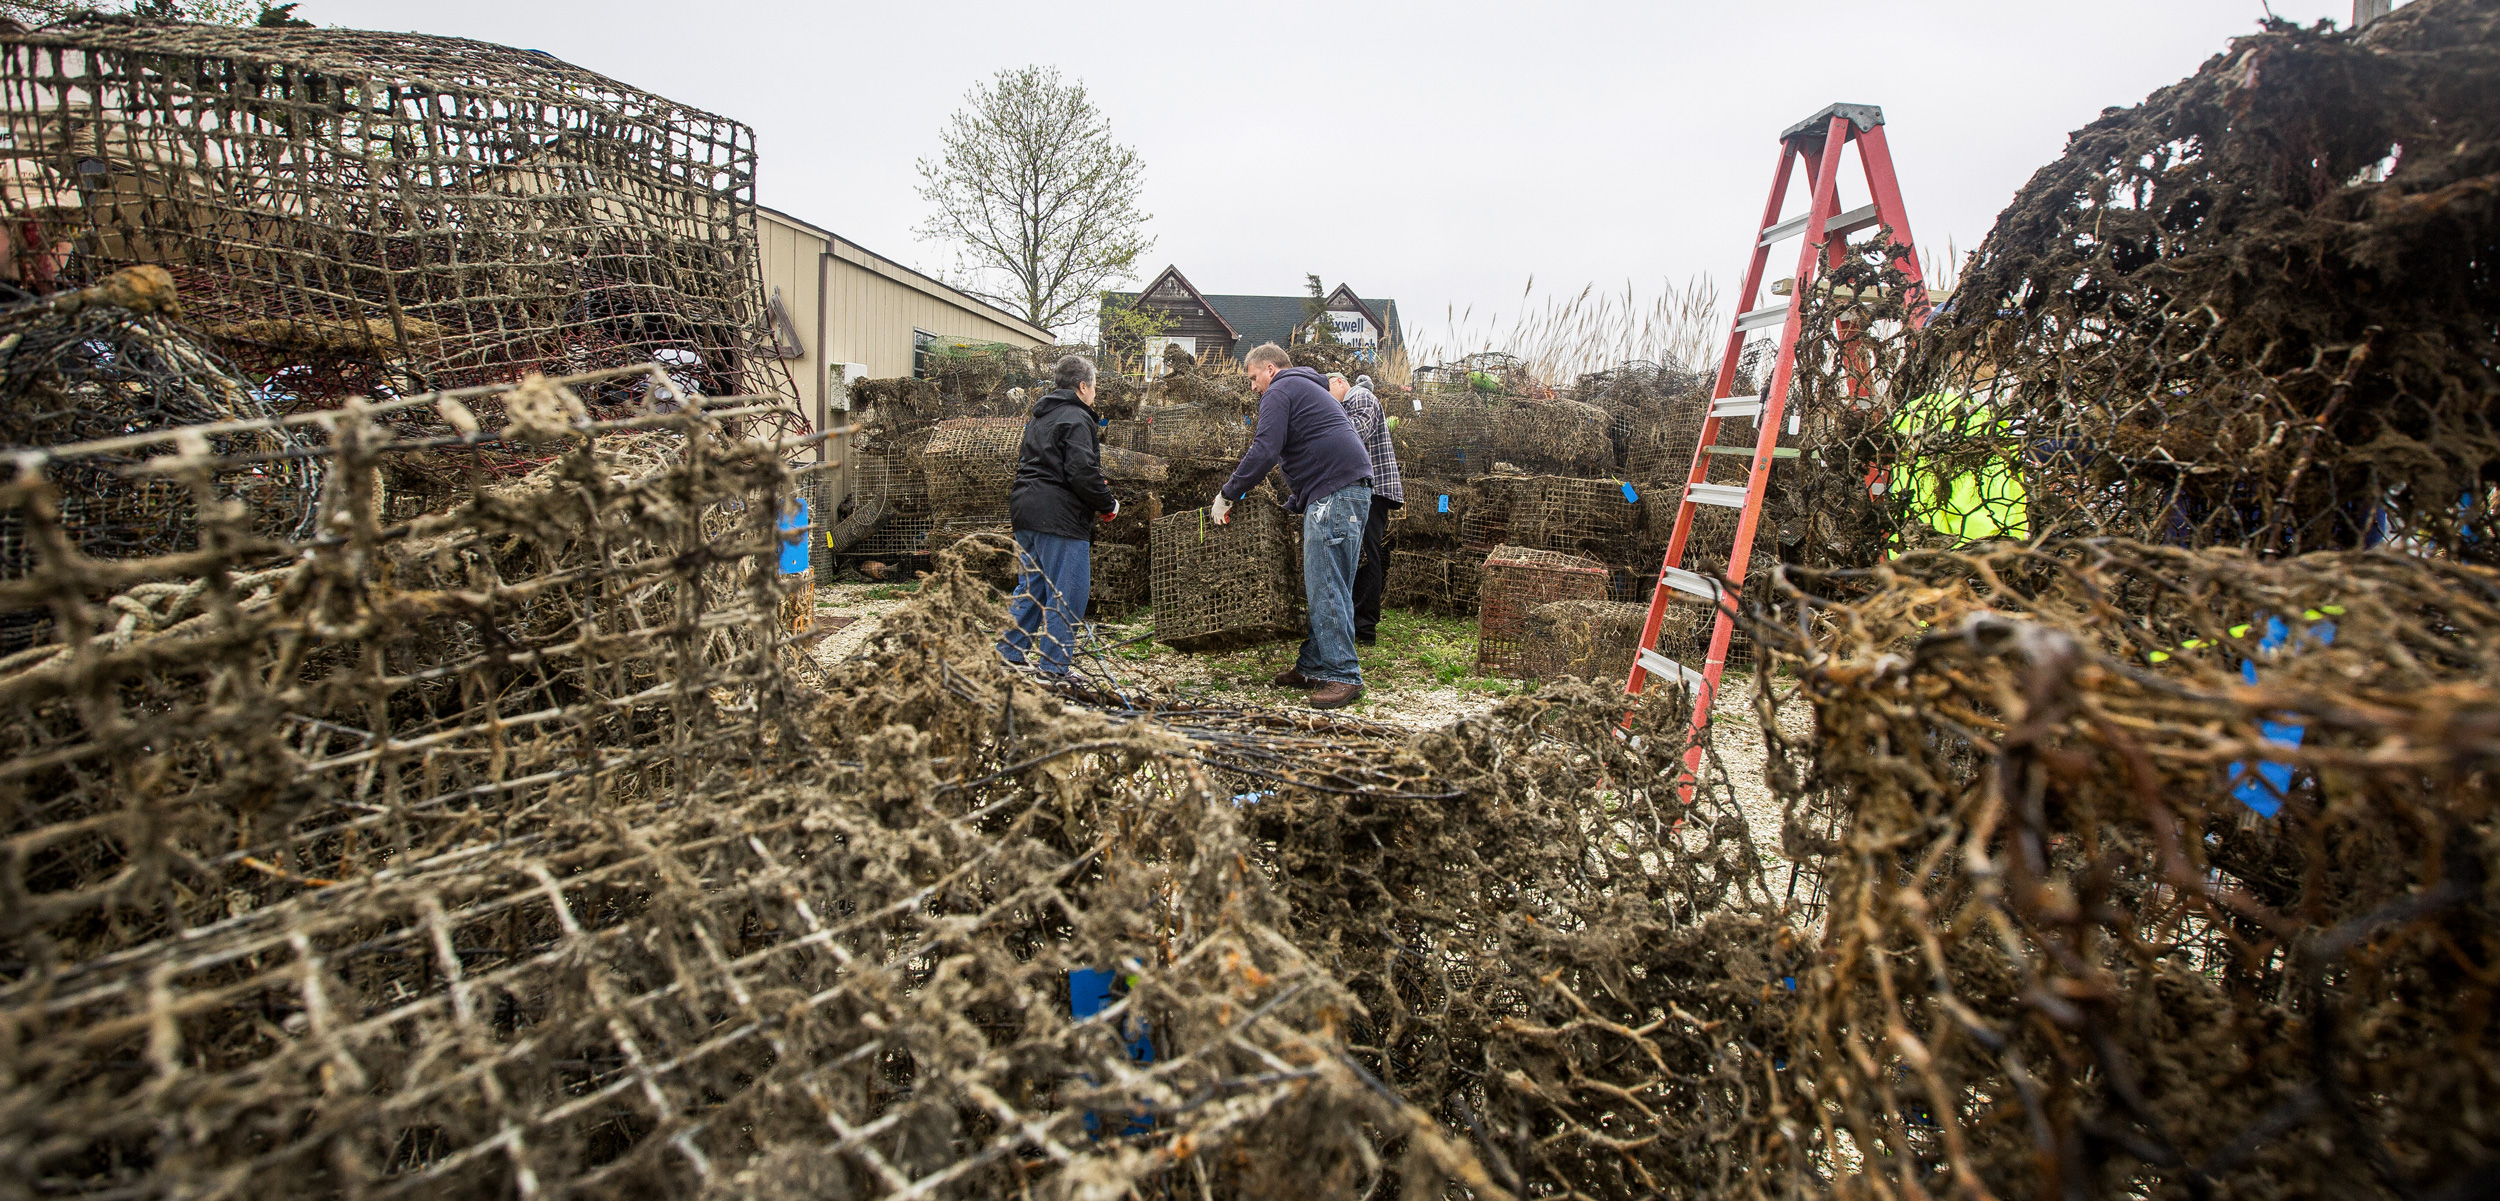 Workers sort through abandoned crab traps